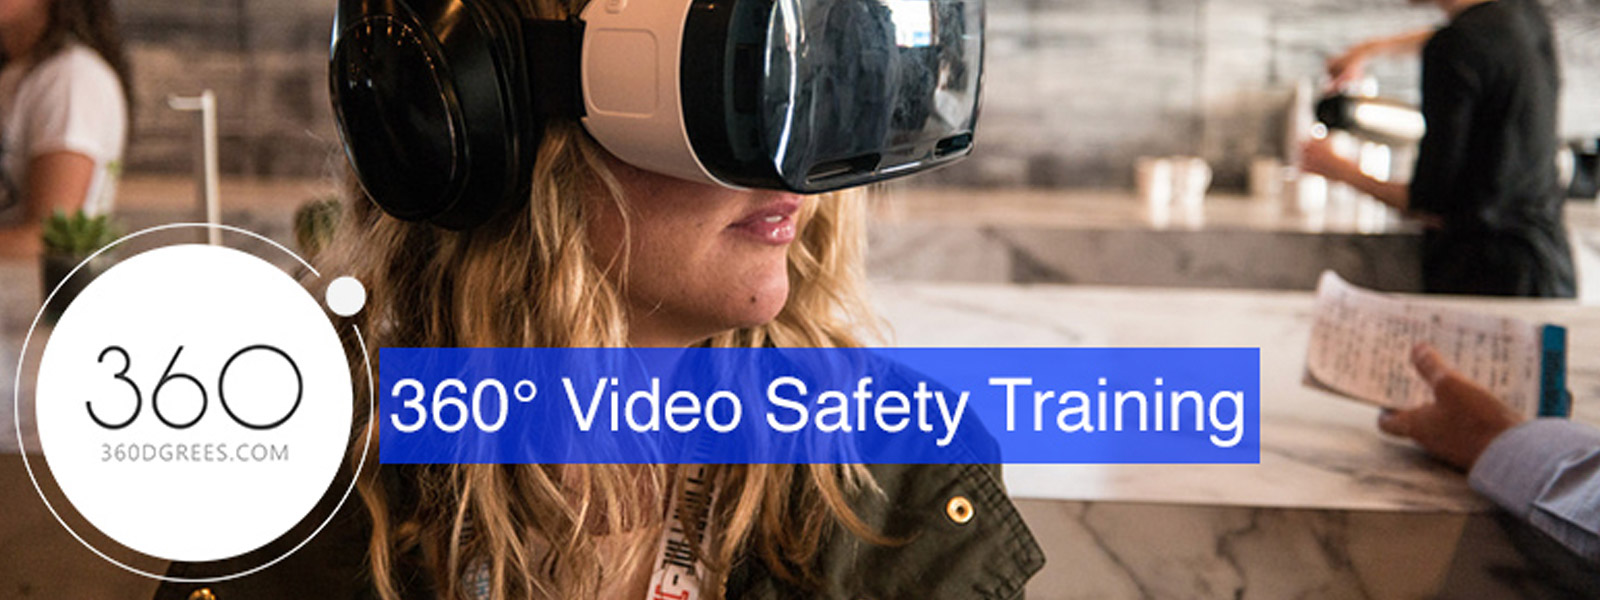 360 video safety training